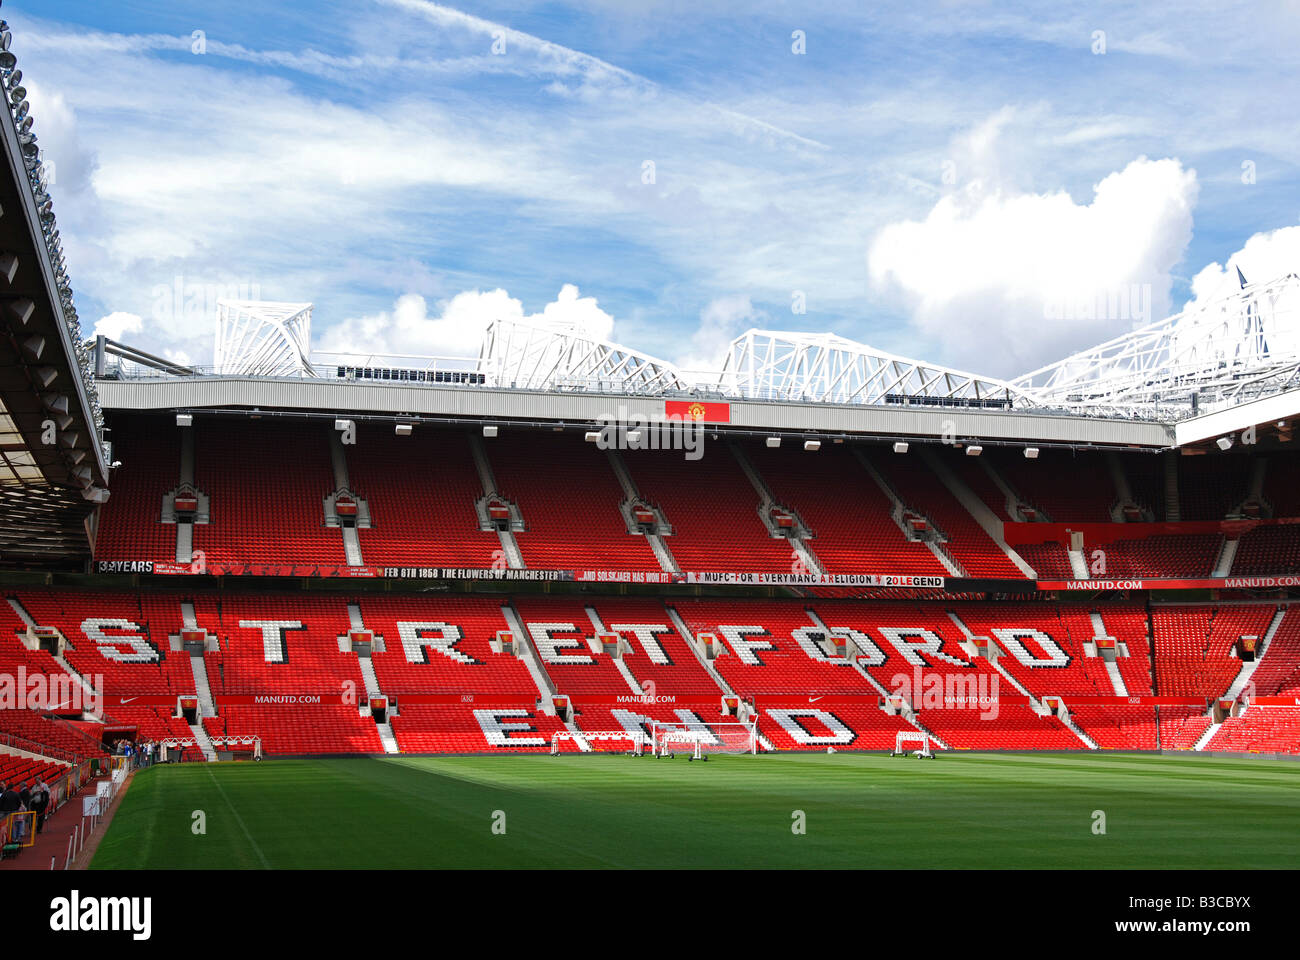 inside an empty 'stretford end' at Old Trafford the home of Manchester United football in England,UK - Stock Image